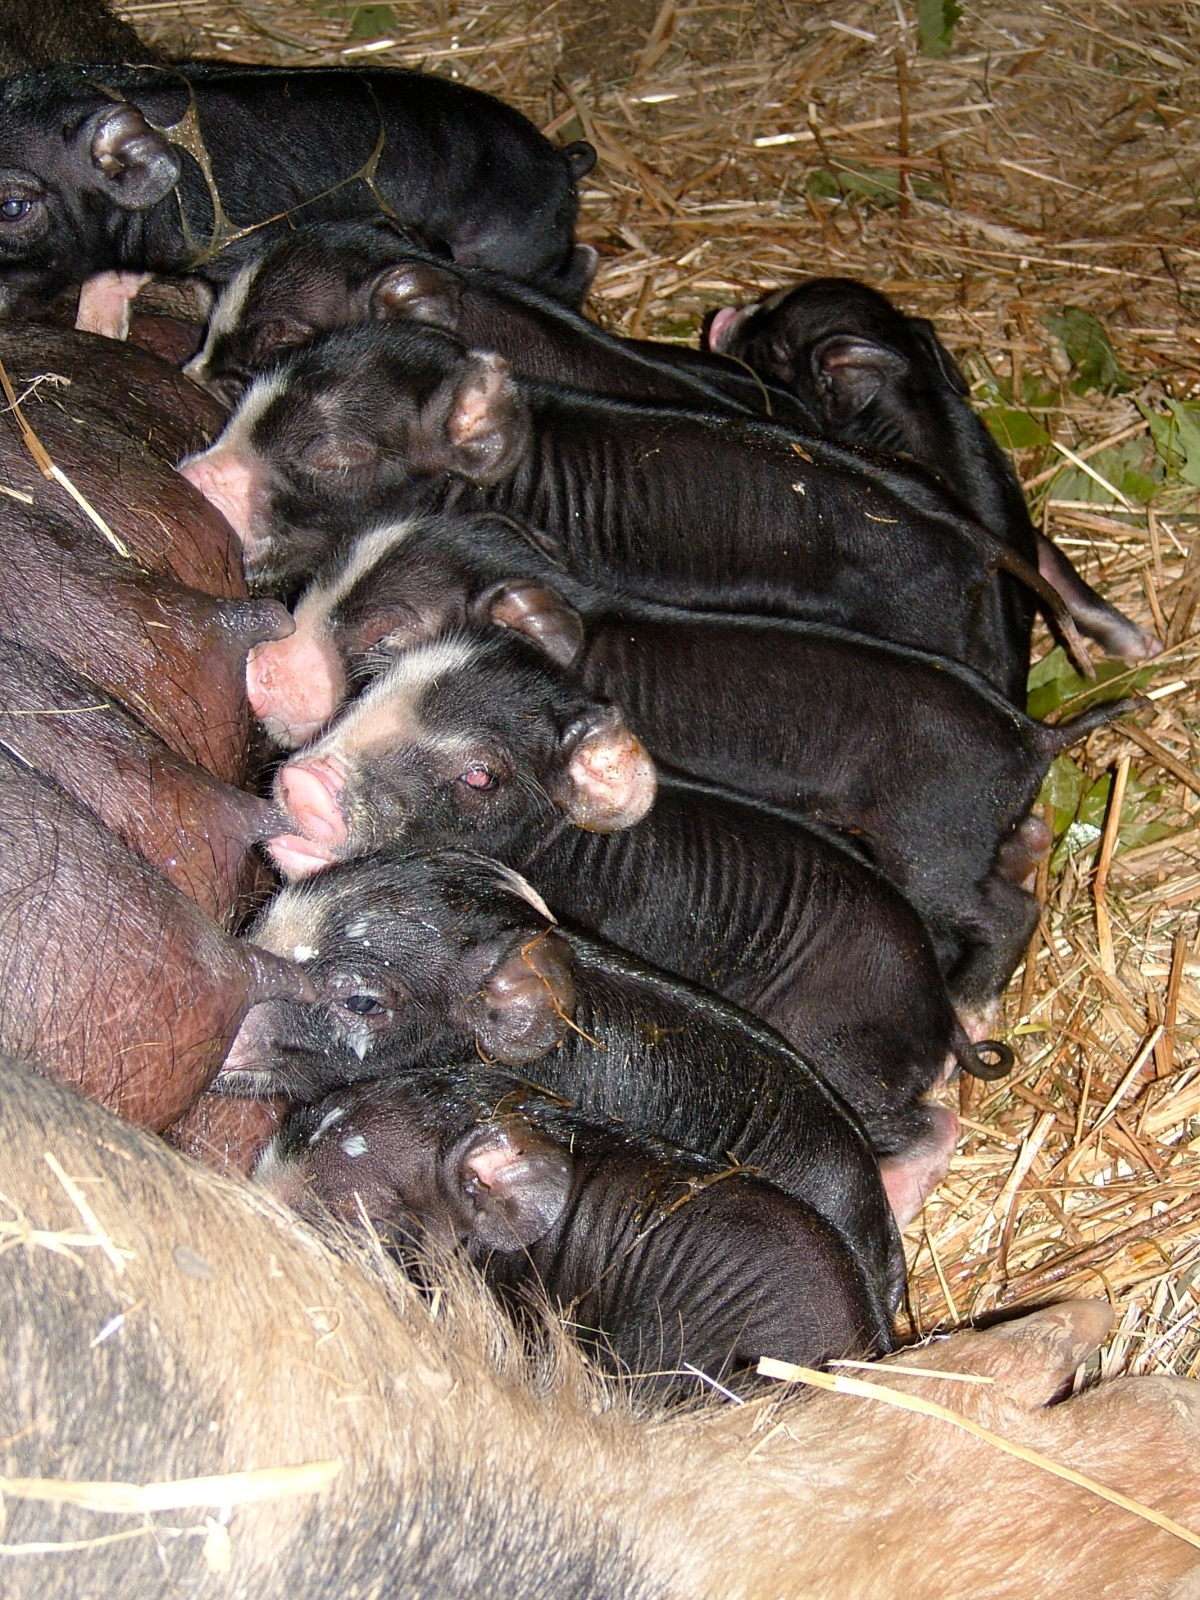 Berkshire piglets suckling from sow